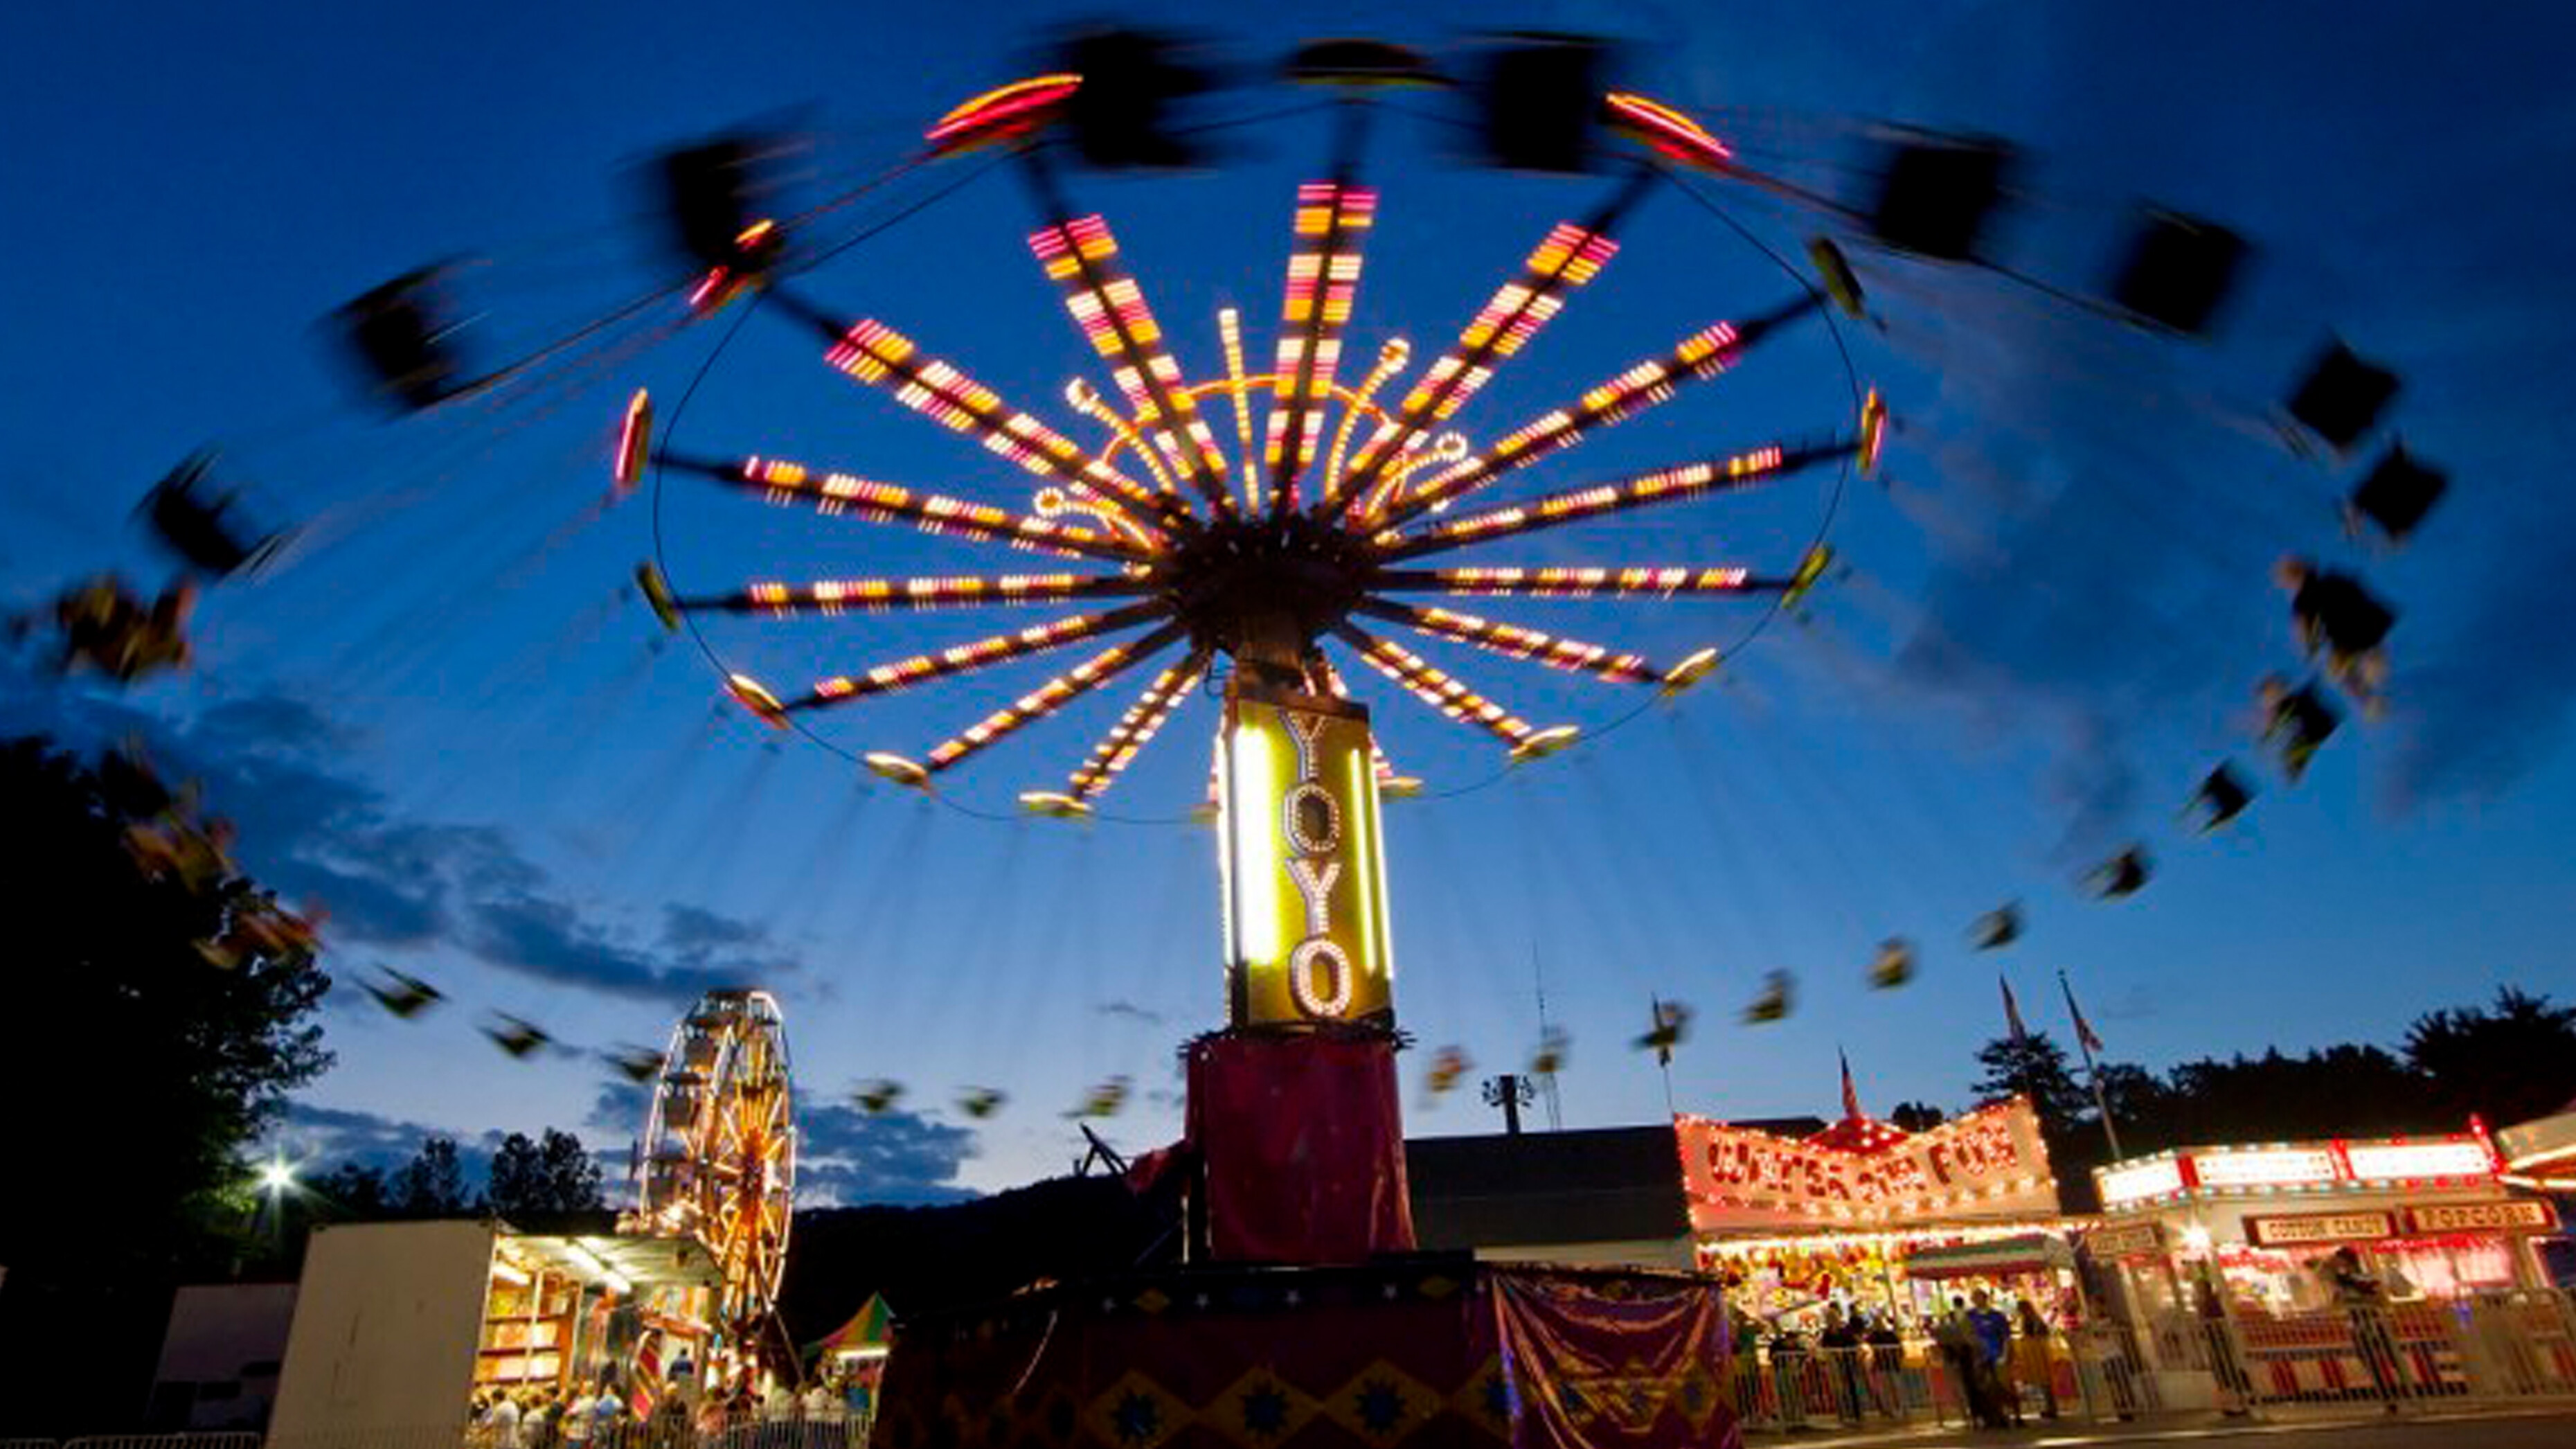 A spinning swings ride in motion at the Firemens Carnival in Beacon Falls CT